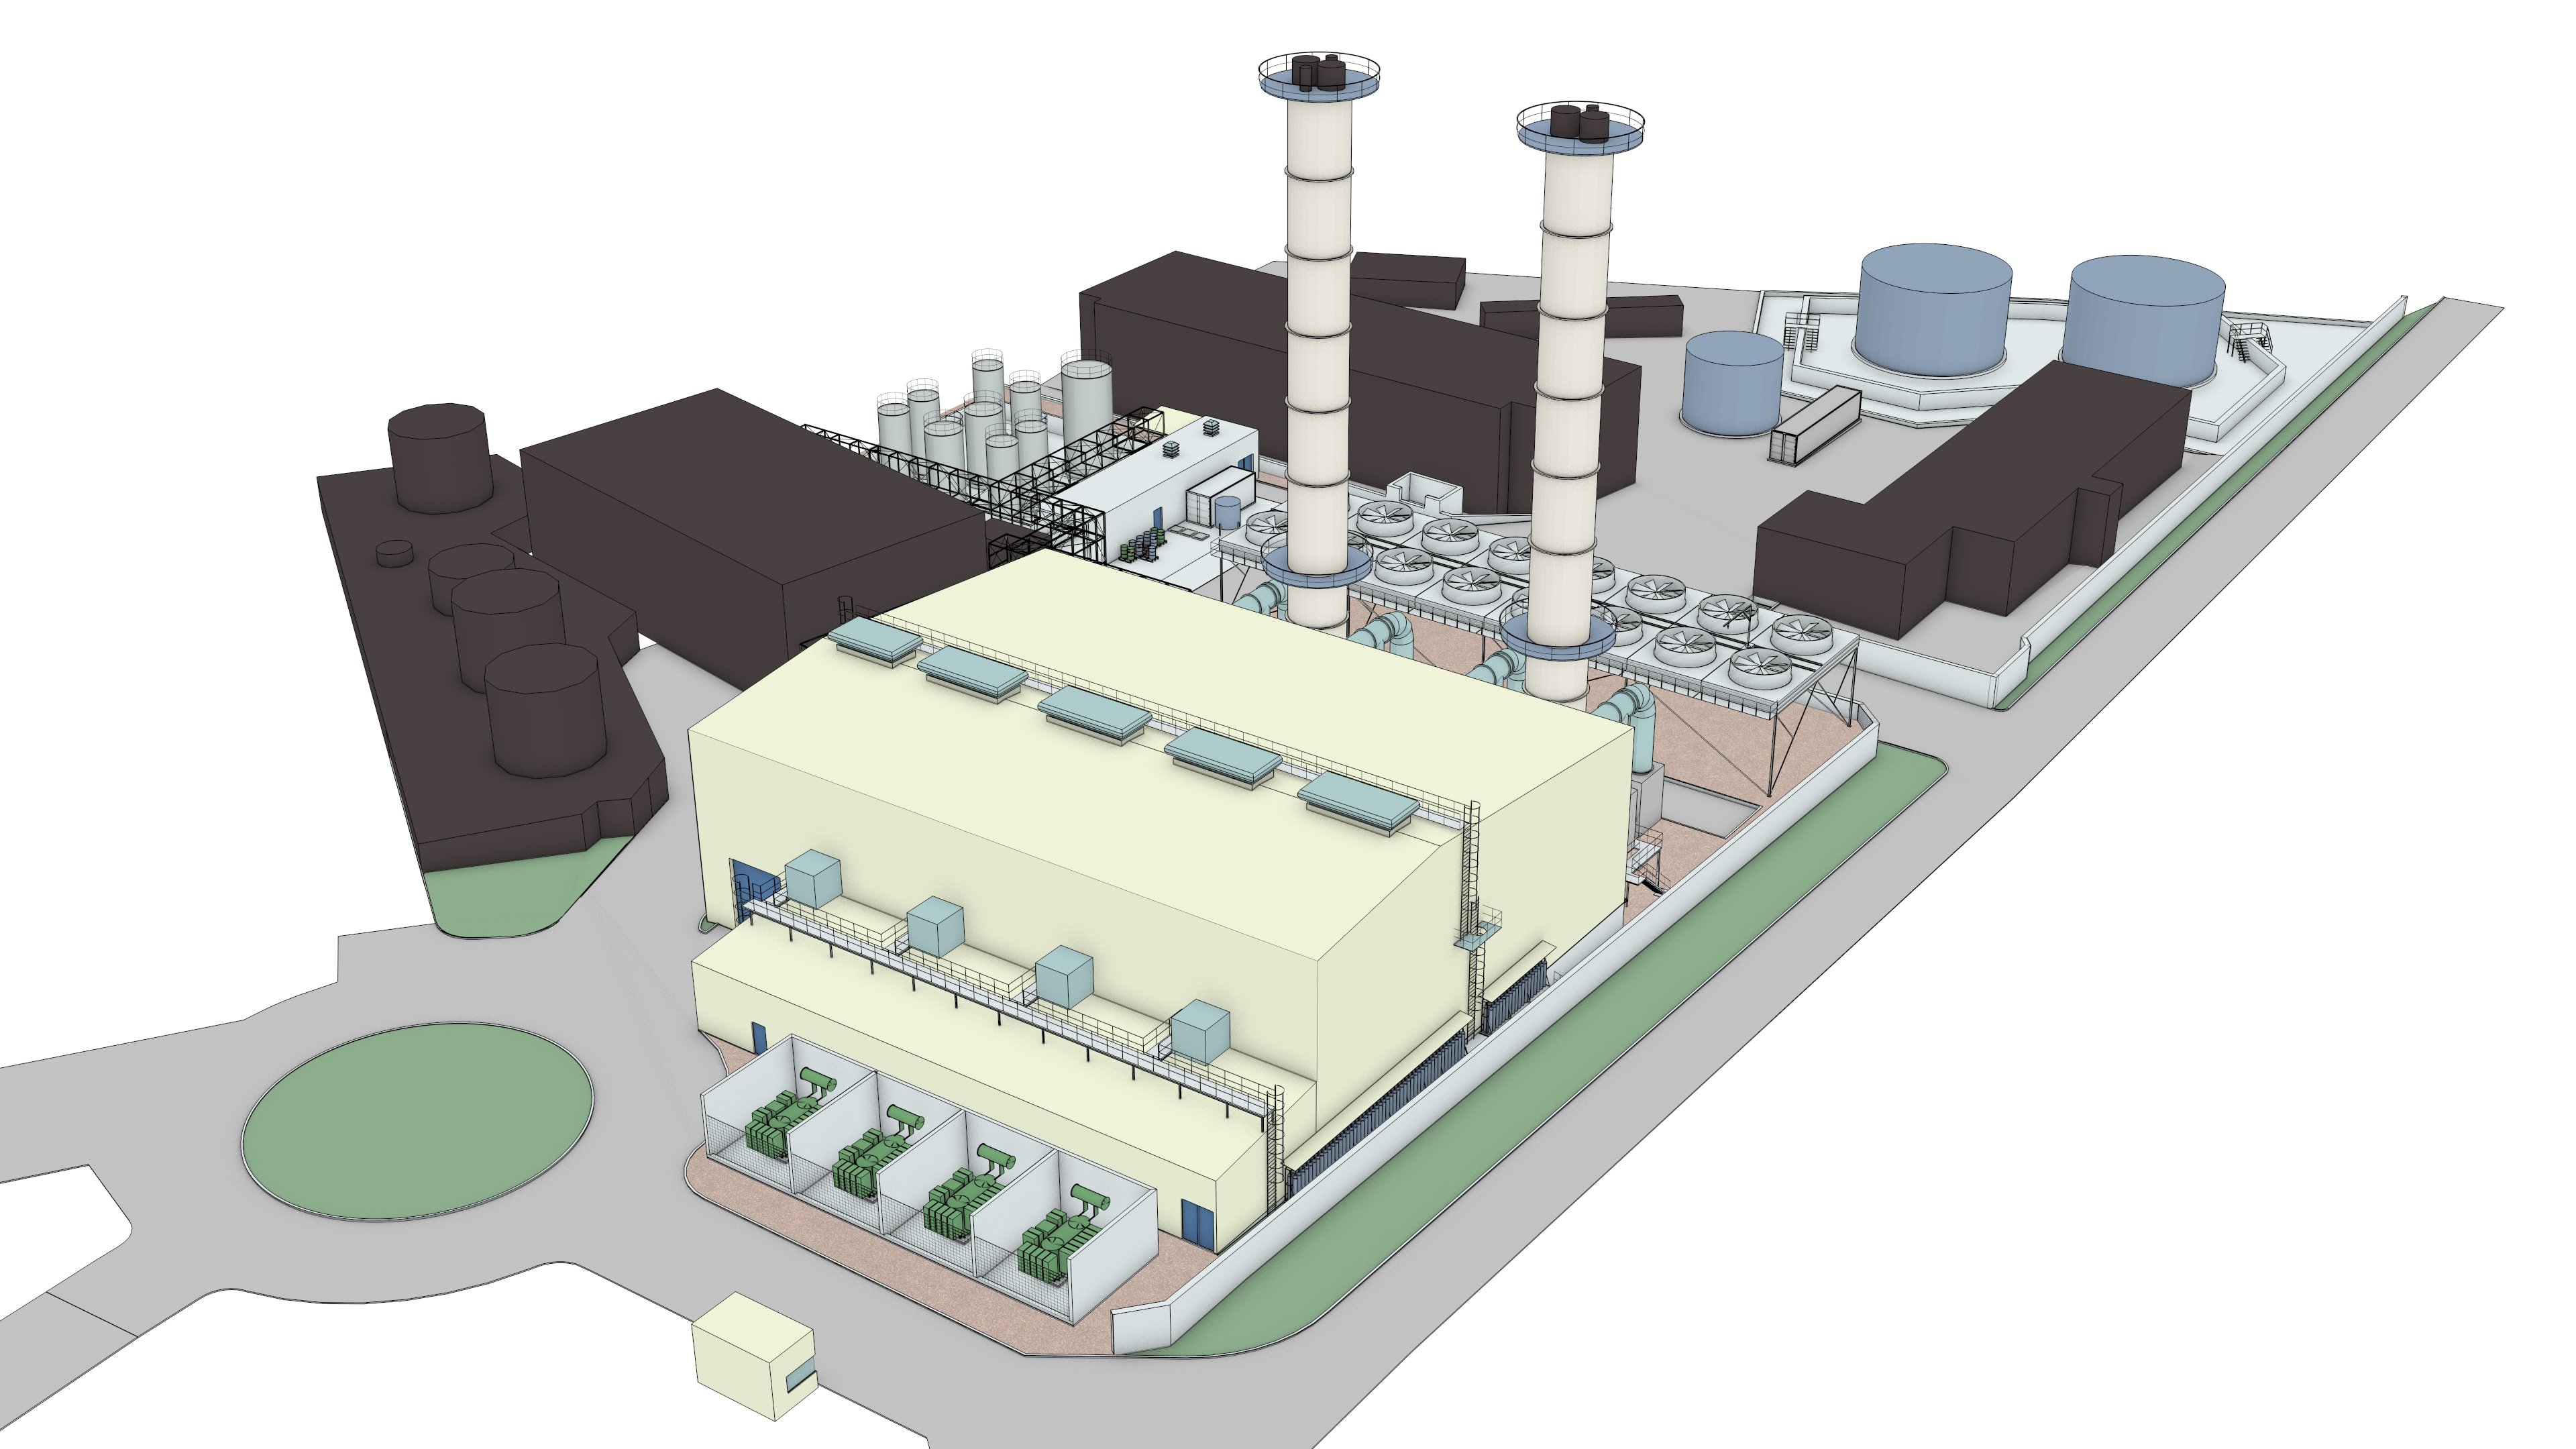 Wärtsilä supplies 67 MW Smart Power Generation power plant to